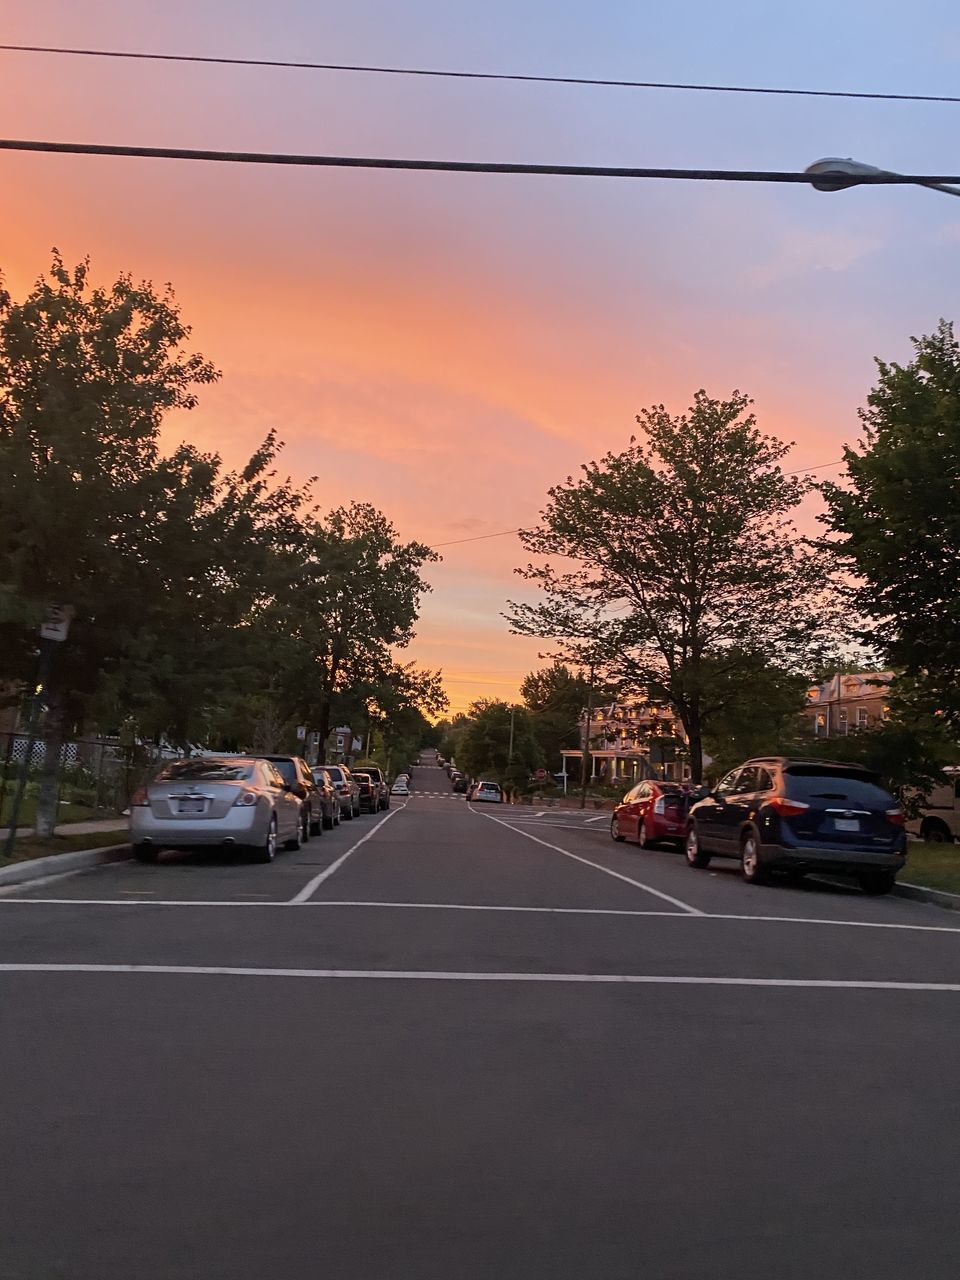 CAR ON STREET AGAINST SKY AT SUNSET